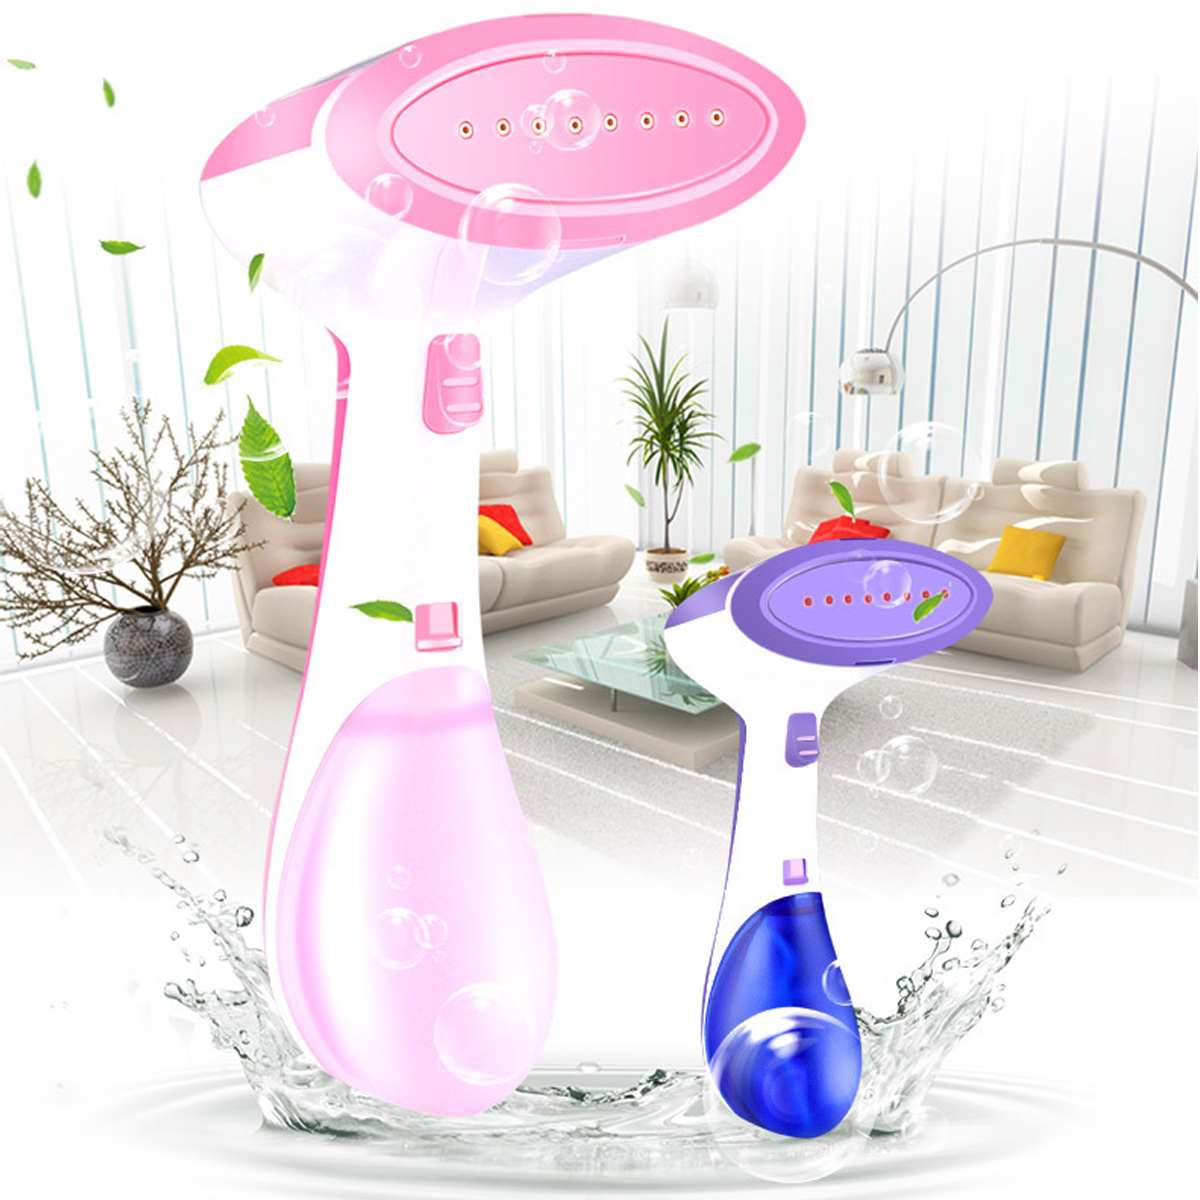 New 1400W Travel Handheld Clothes Steamer Powerful Garment Steamer Household Appliances Home Handheld Electric Steam Iron